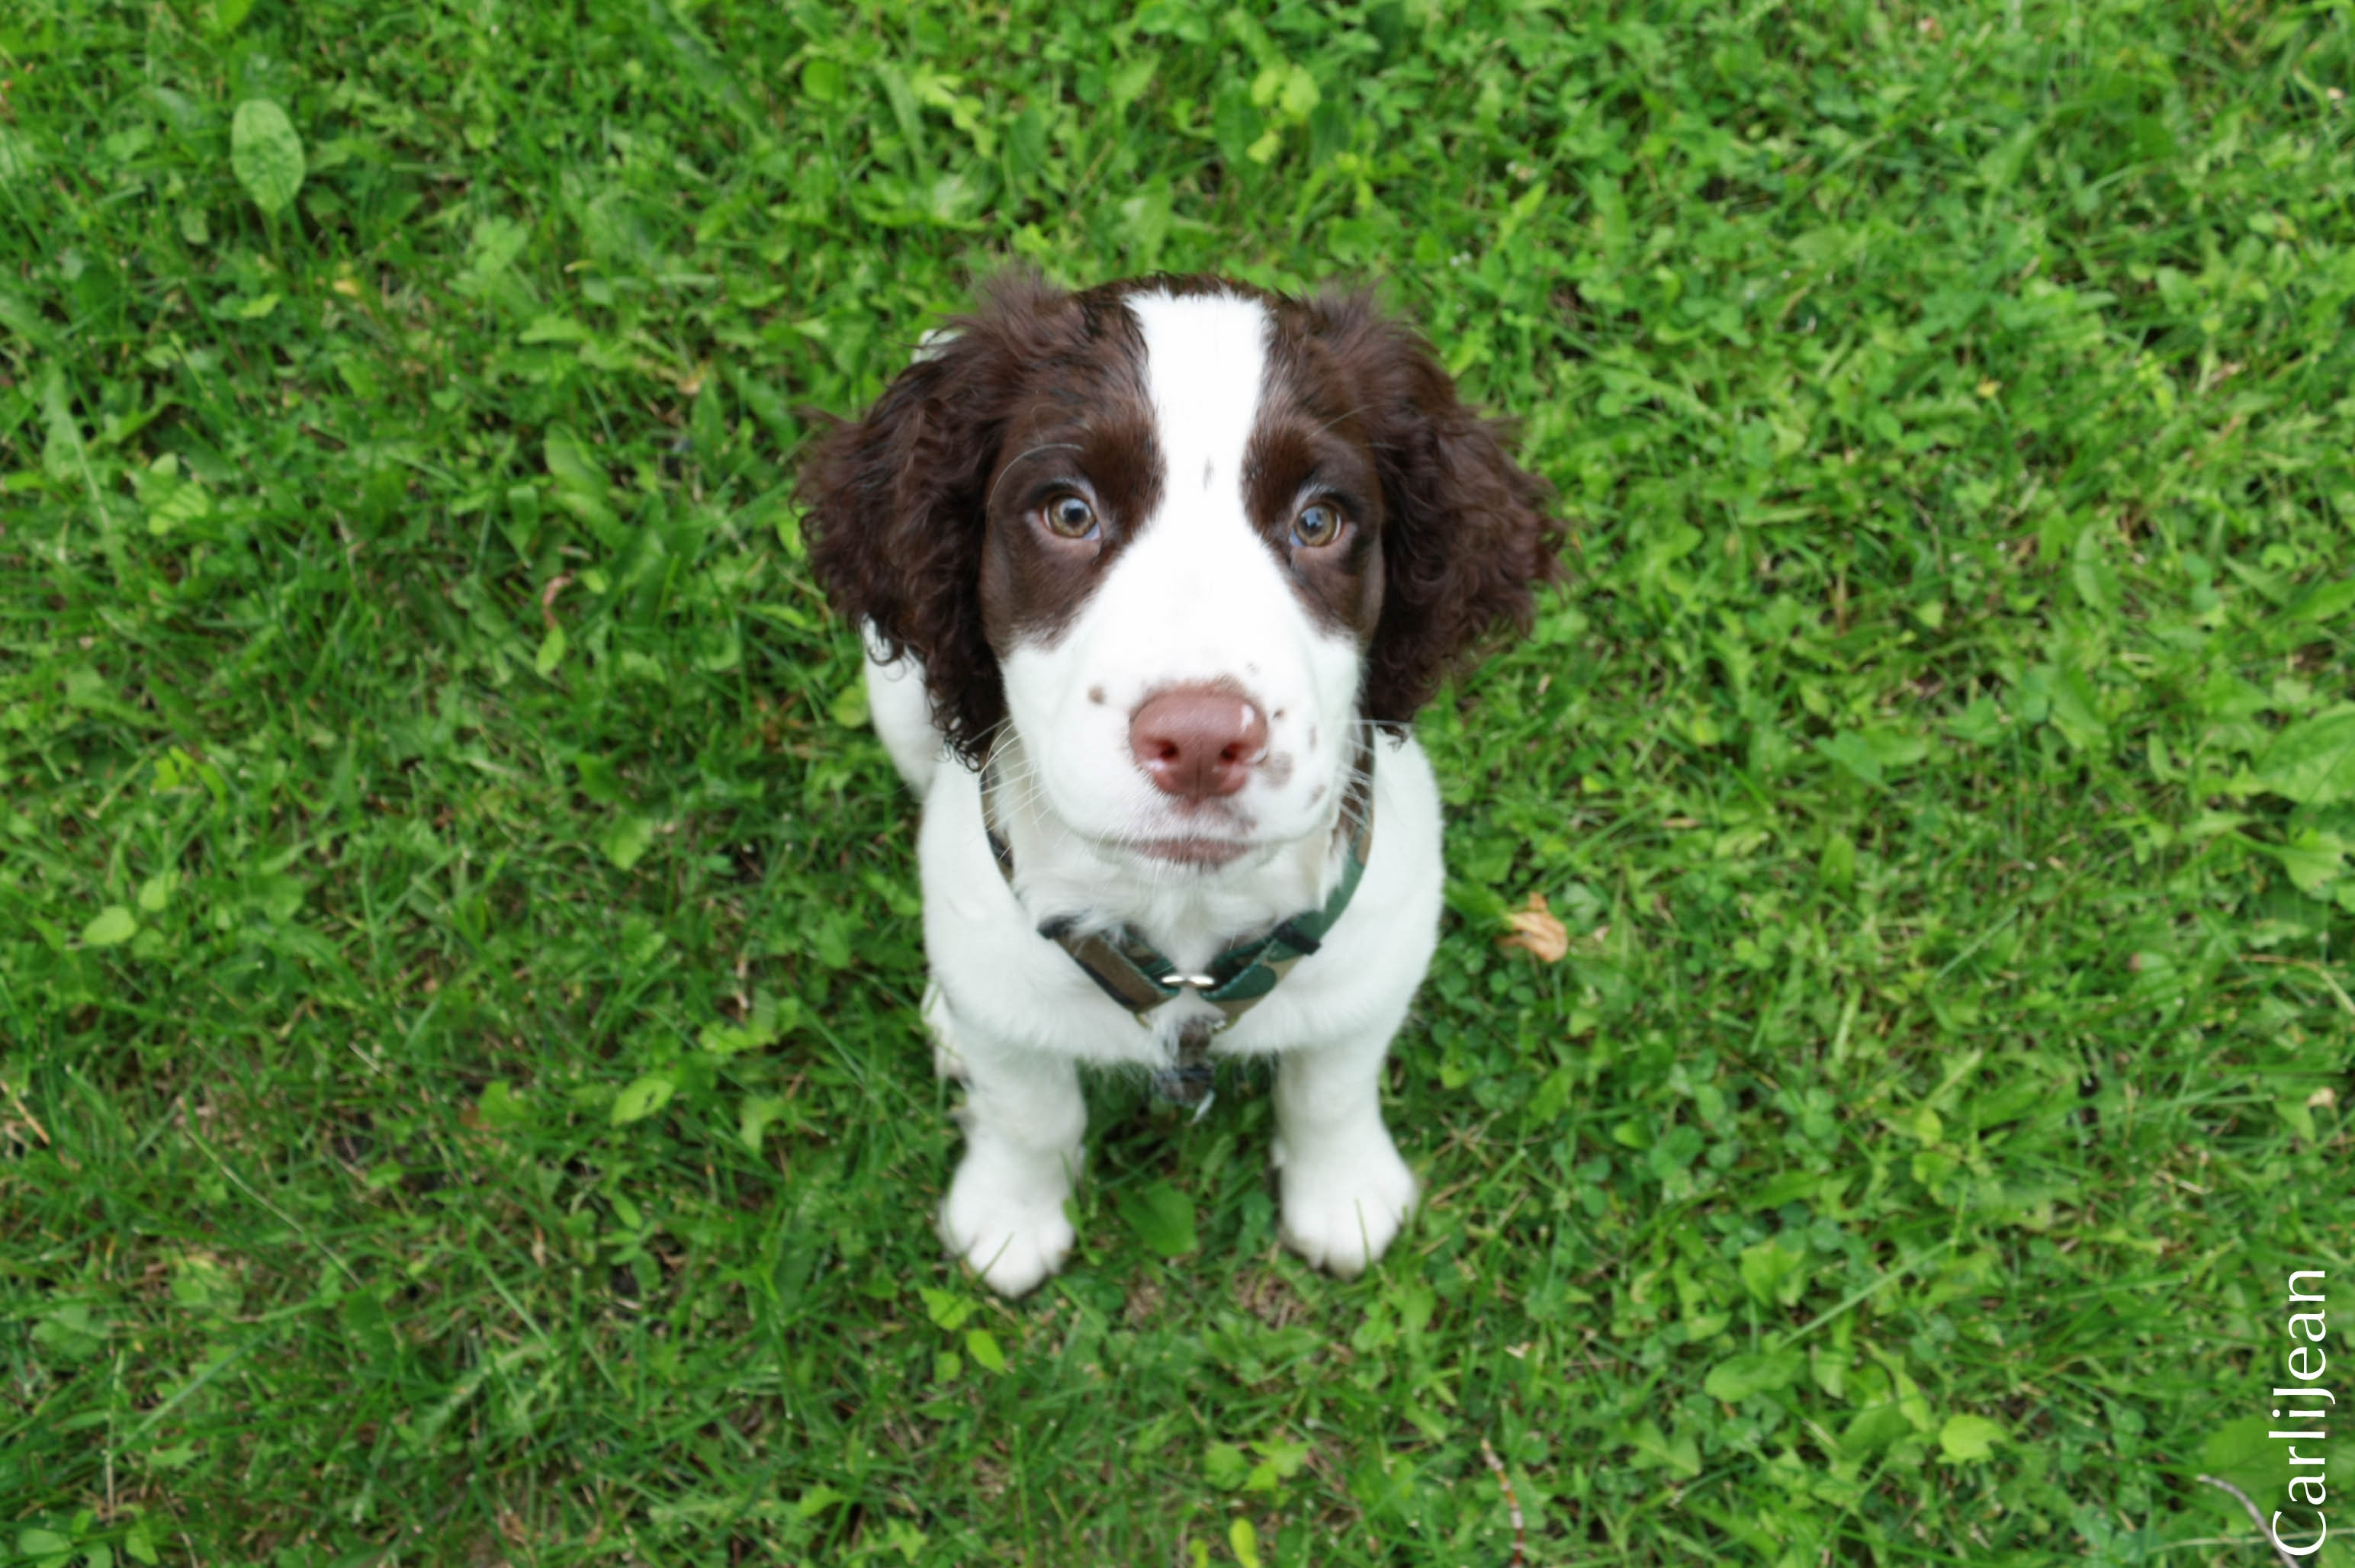 77779 download wallpaper Animals, Spaniel, Puppy, Grass, Sit, Sight, Opinion screensavers and pictures for free